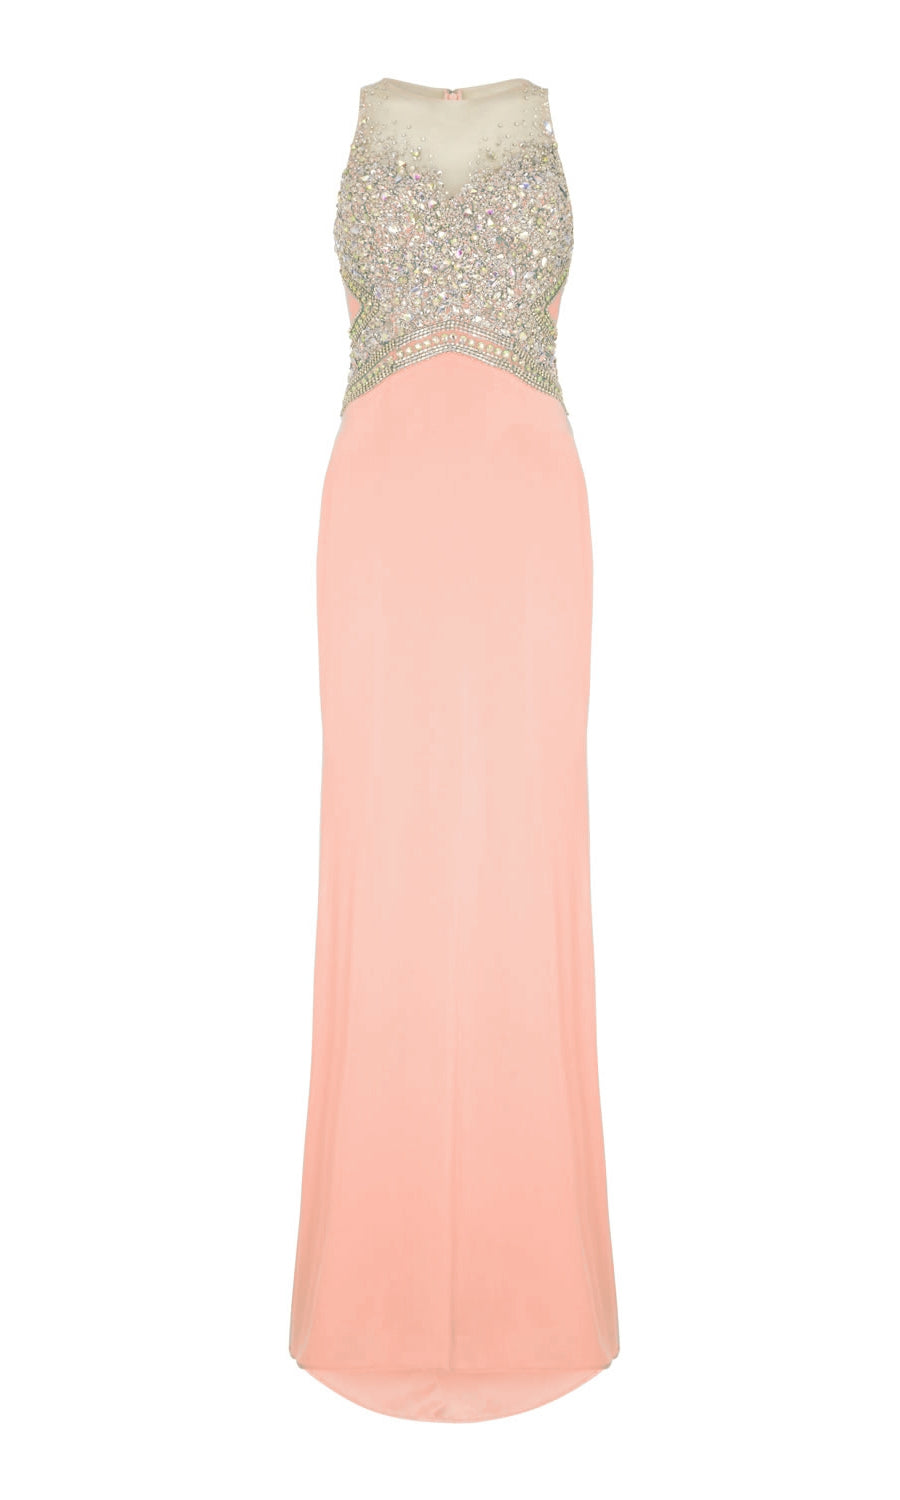 1022808 Coral Dynasty Evening Dress With Silver Beading - Fab Frocks